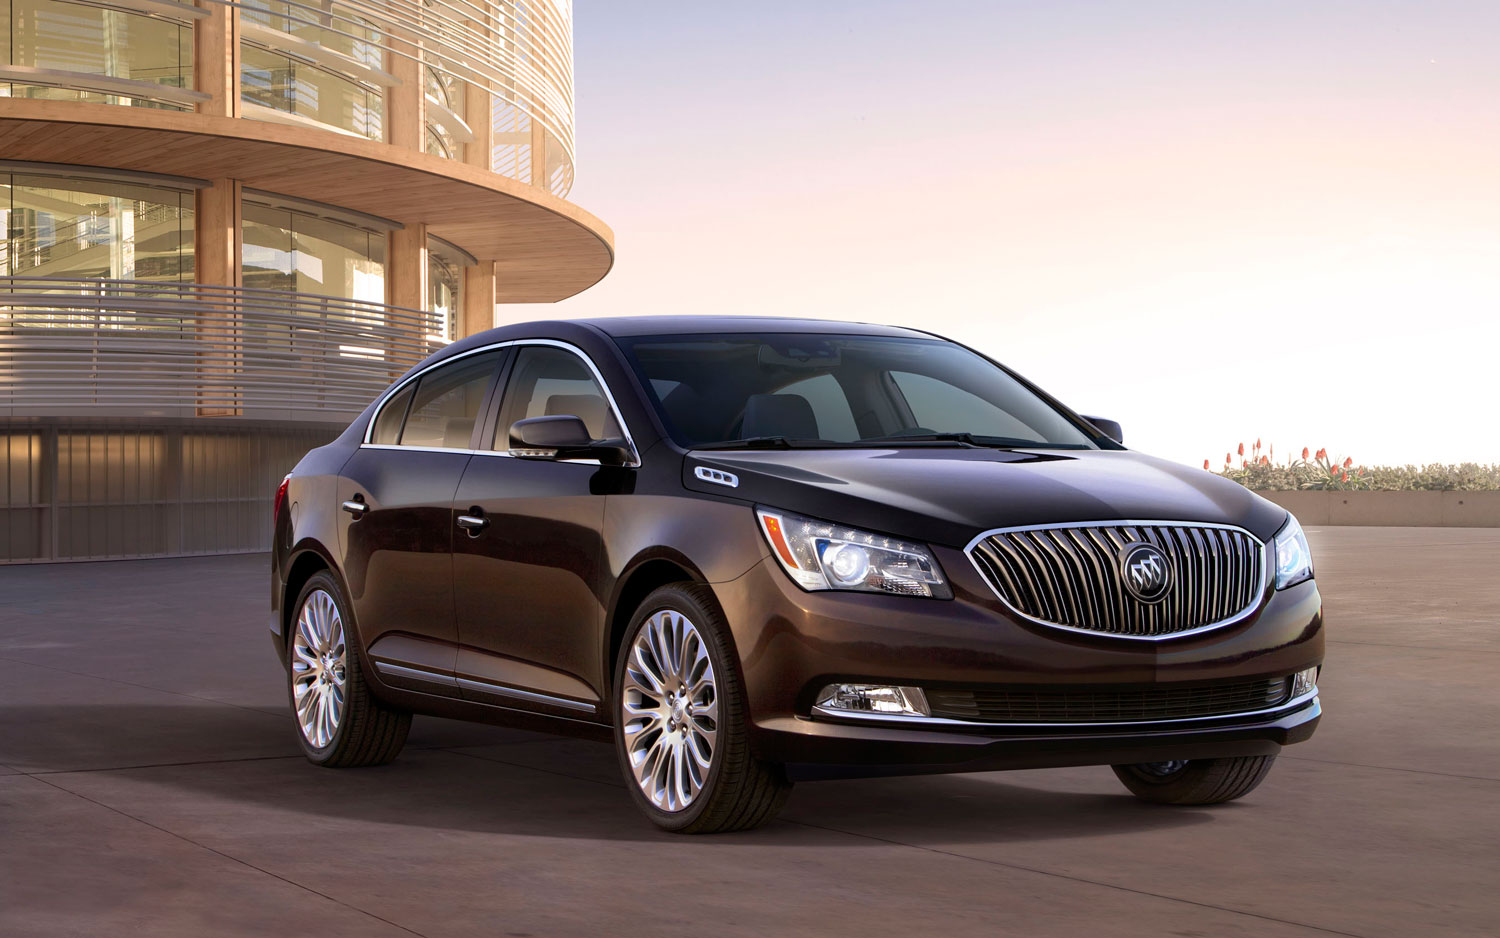 2014 Buick LaCrosse Front Right View1